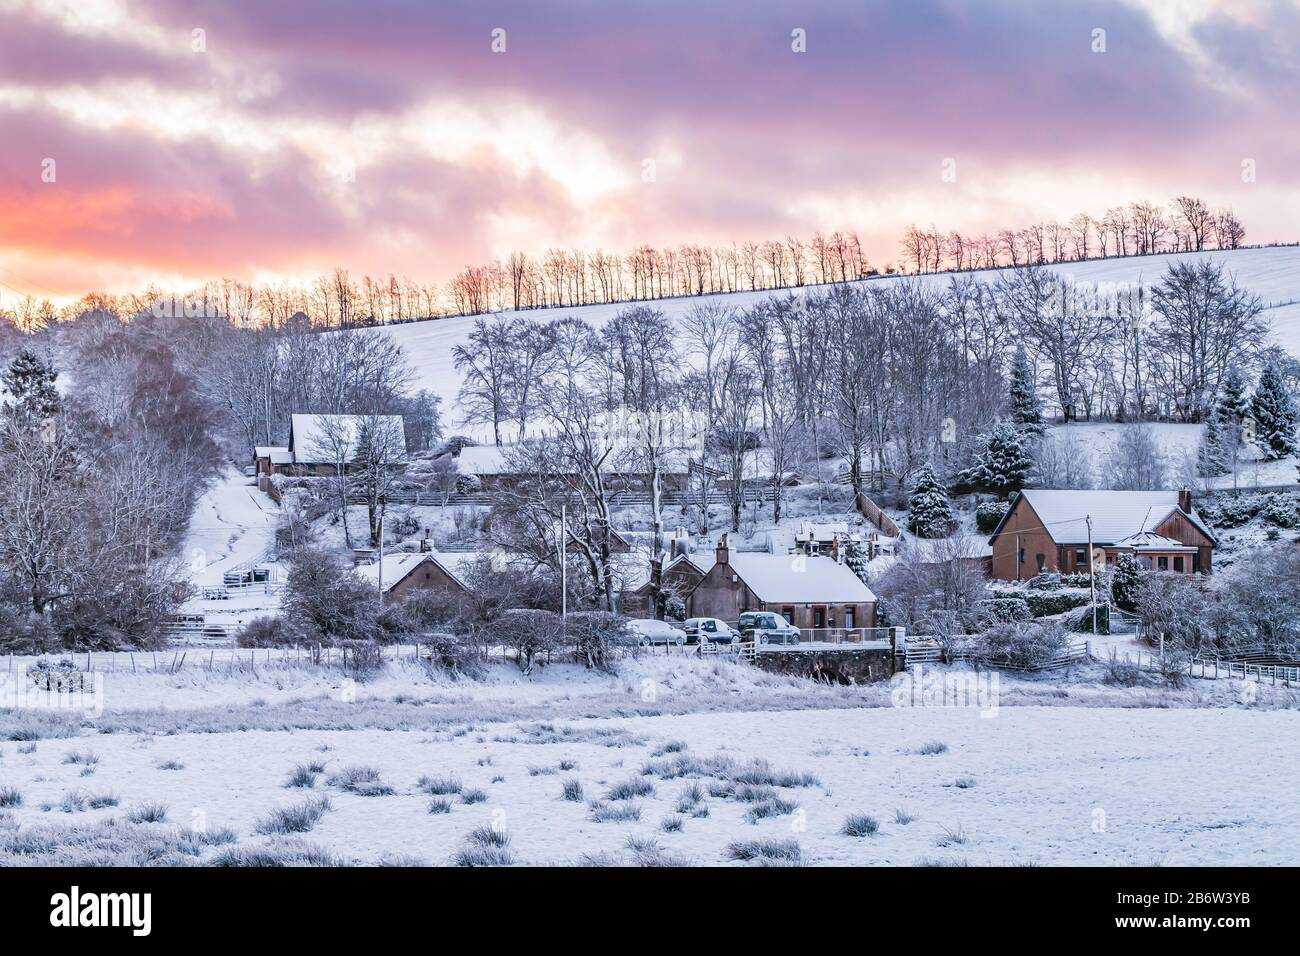 Earlston, Scottish Borders, UK. 12th March 2020. Heavy snow fell overnight in the Scottish Borders making the morning commute a bit more challenging. Credit: Chris Strickland / Alamy Live News Stock Photo